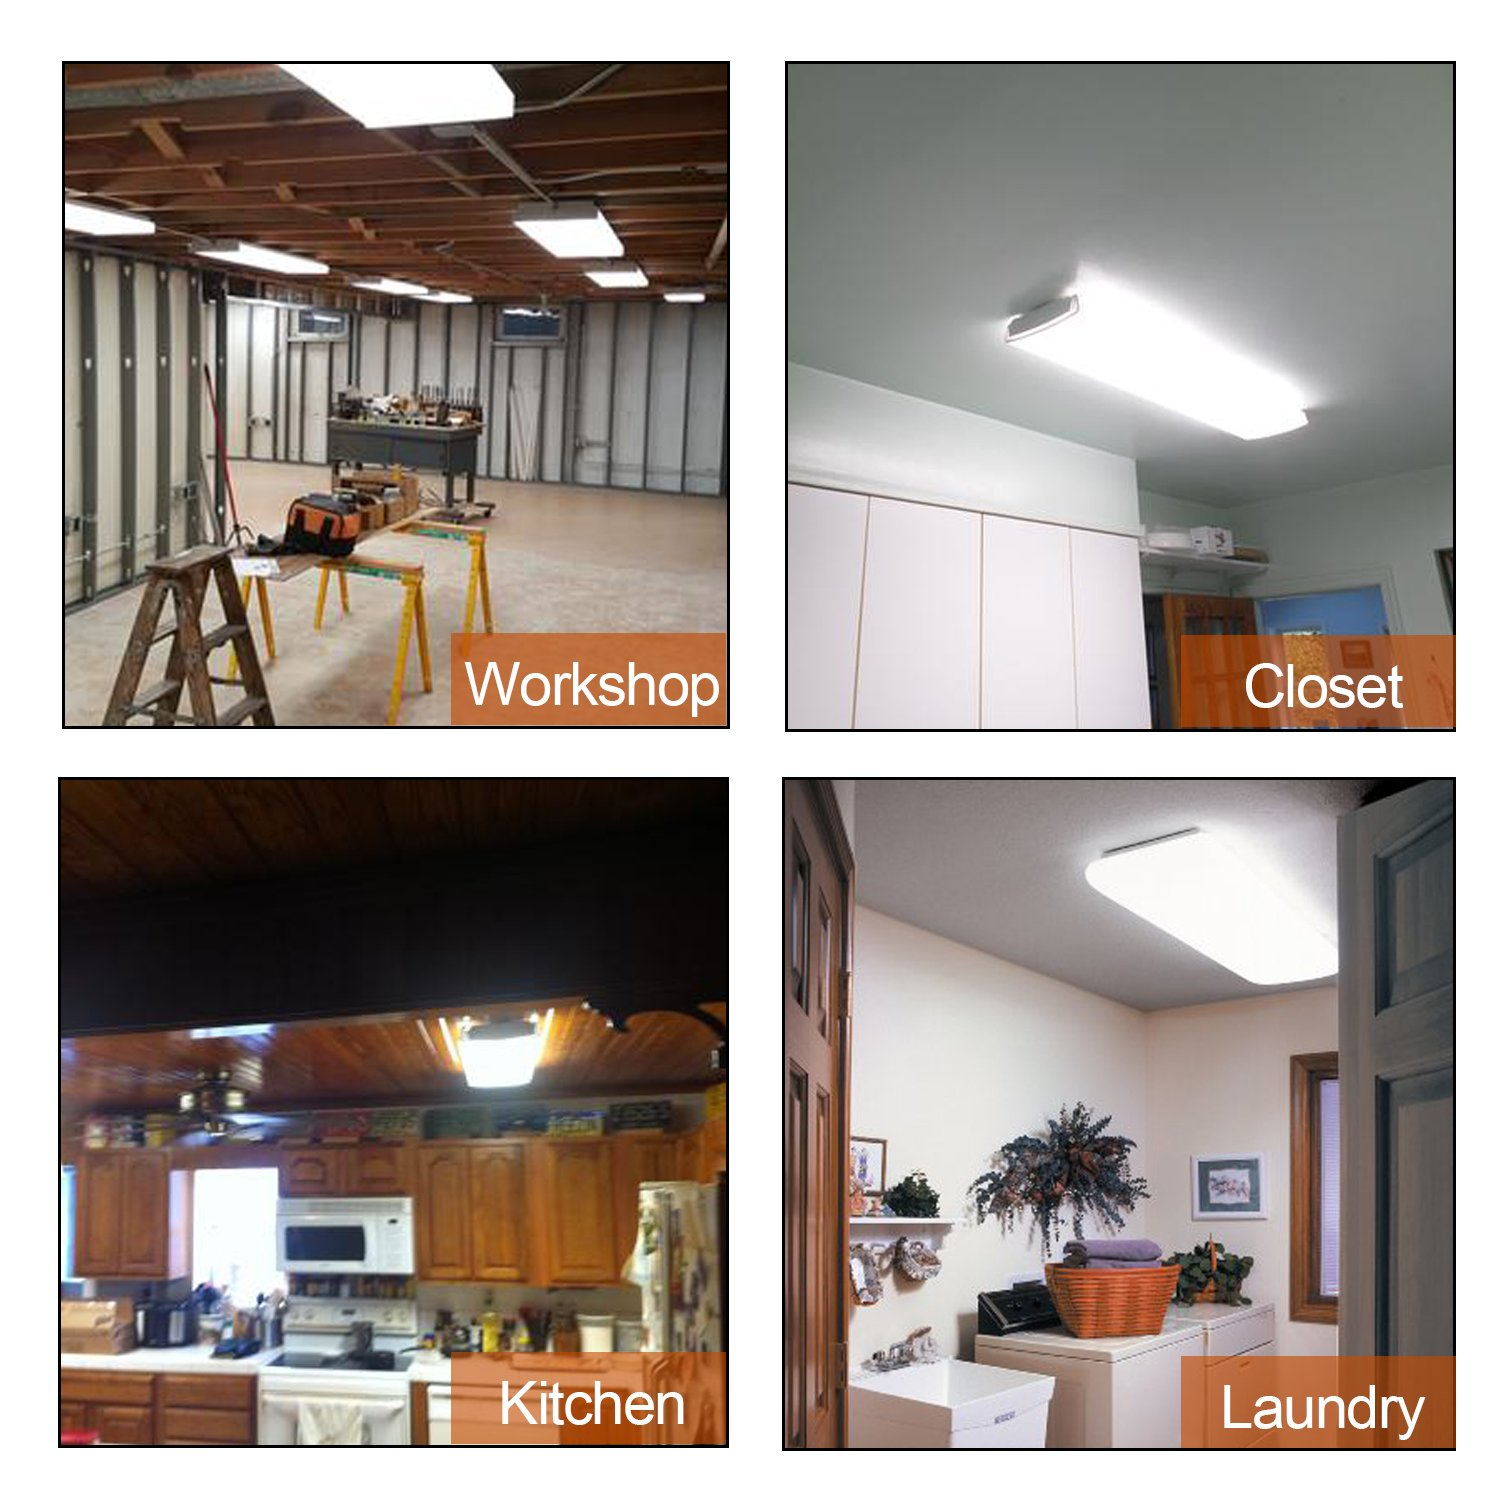 AntLux 4FT LED Wraparound Flushmount LED Garage Shop Lights - 40W 4800LM - 4000K Neutral White - Integrated Low Profile Commercial Linear Ceiling Lighting Fixture, Pack of 4